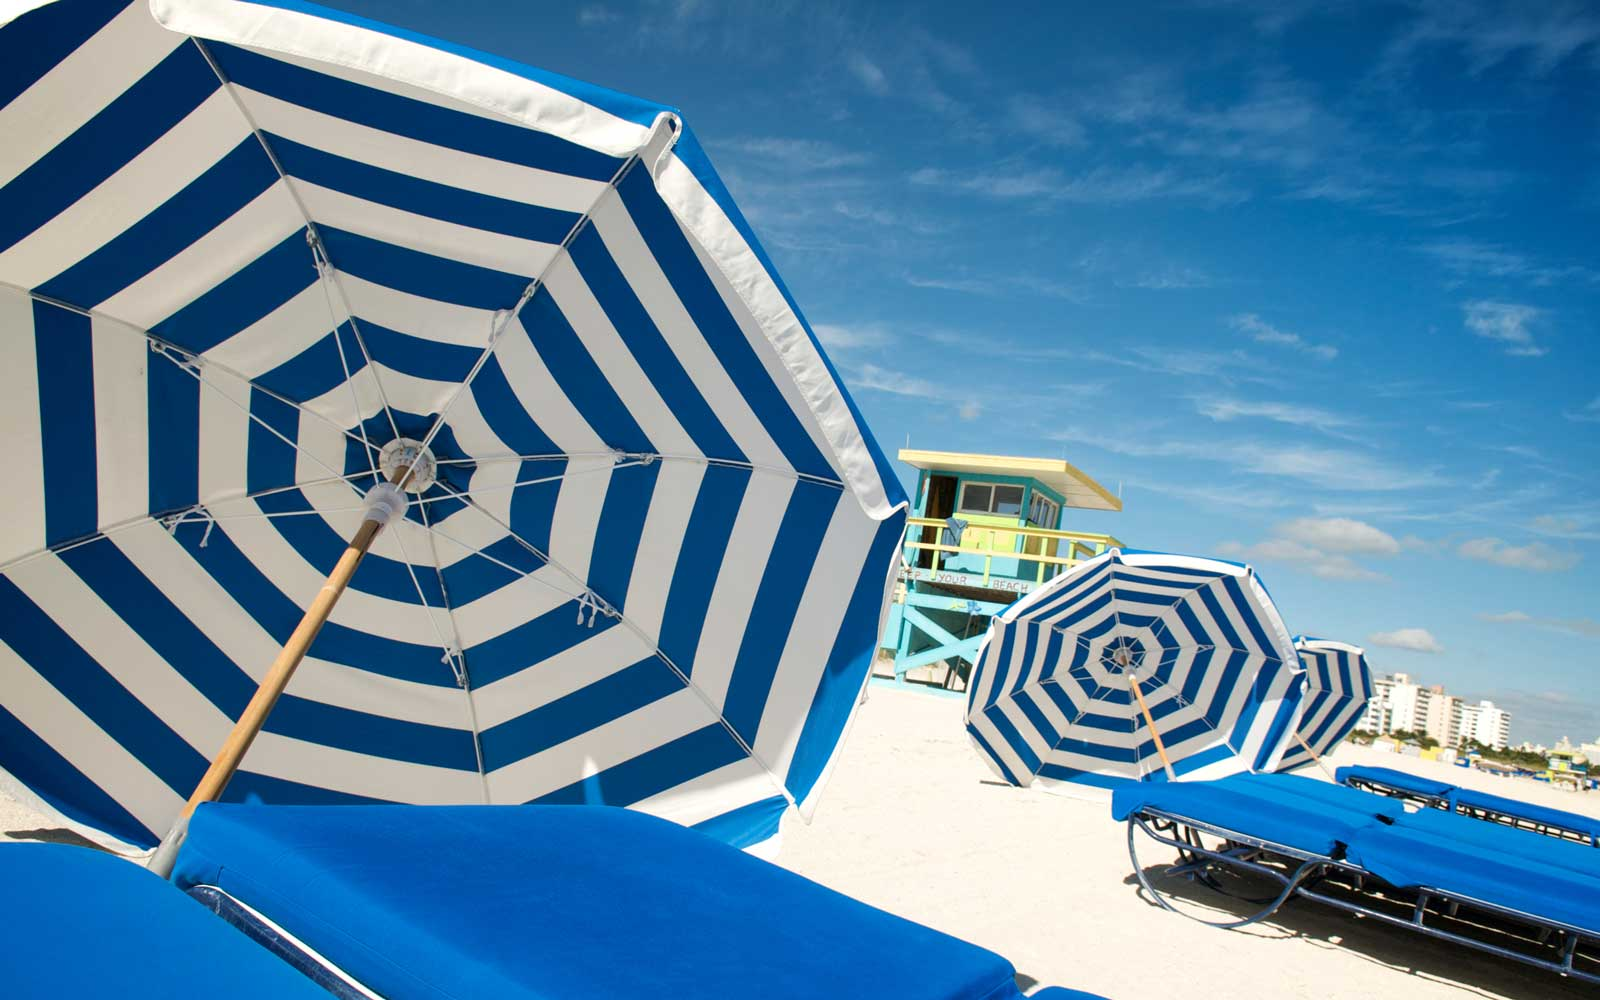 Woman Impaled by Beach Umbrella in New Jersey After 'Just a Gust of Wind'